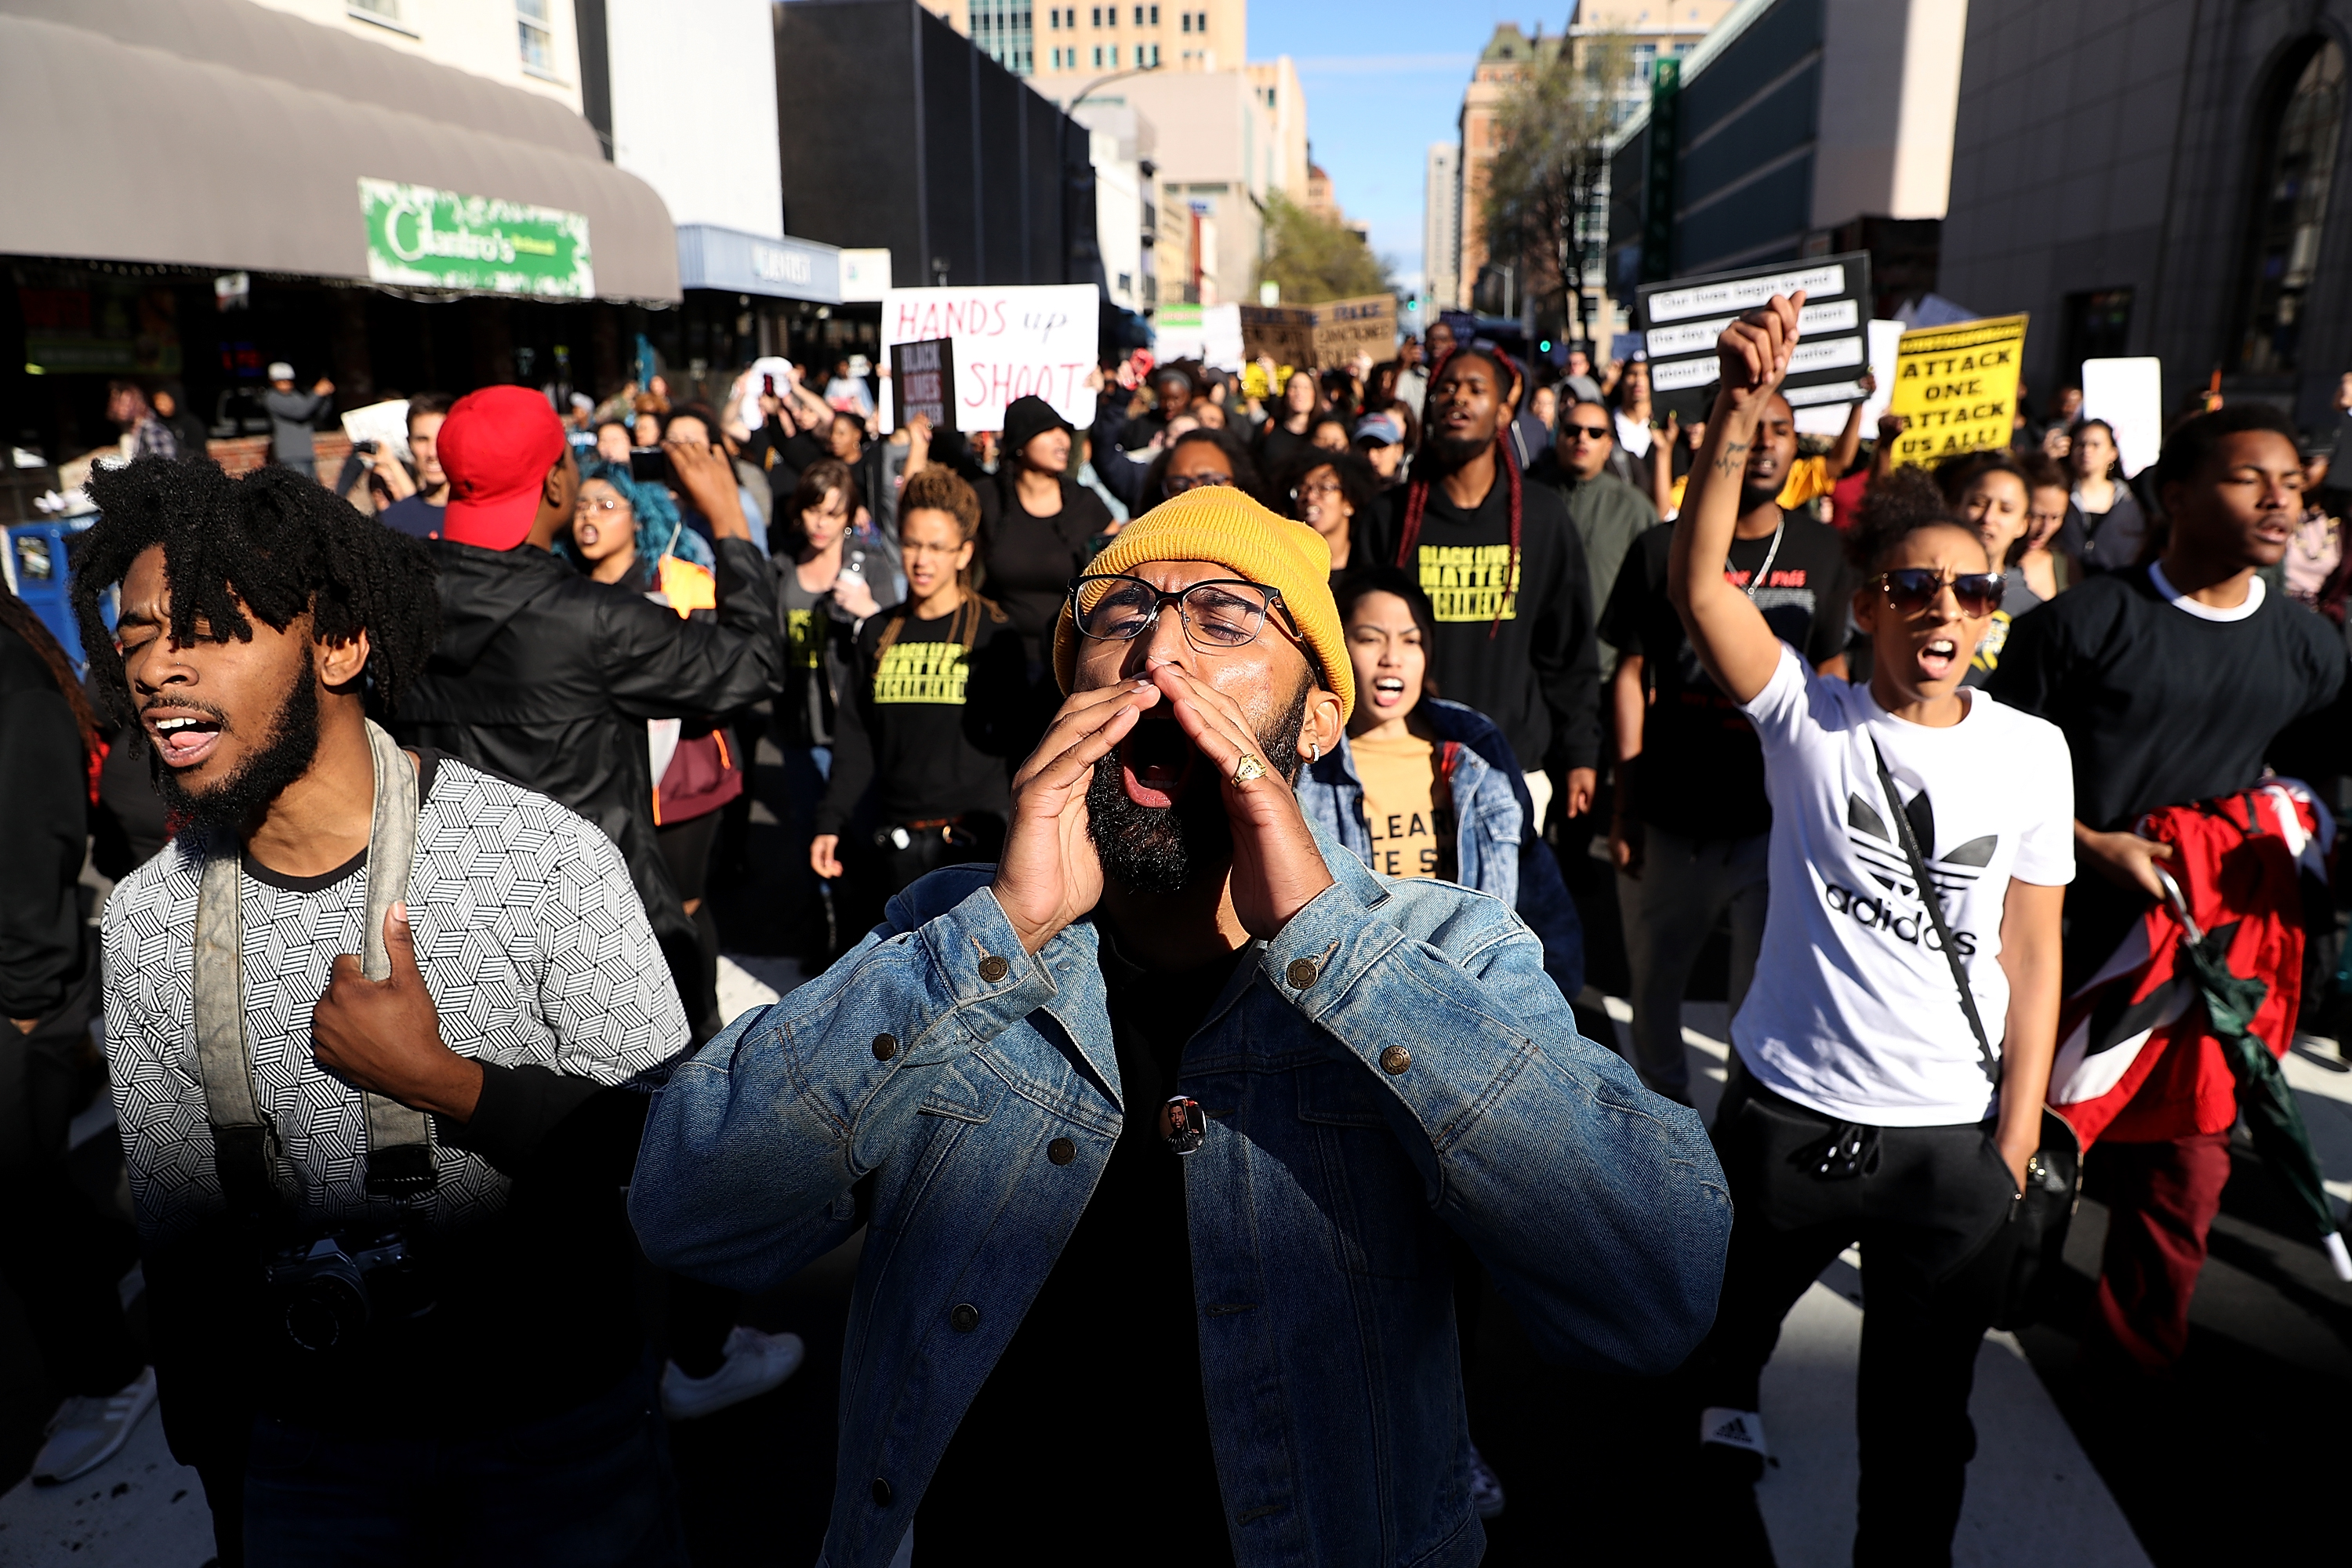 Black Live Matter protesters march during a demonstration on March 22, 2018 in Sacramento, California.